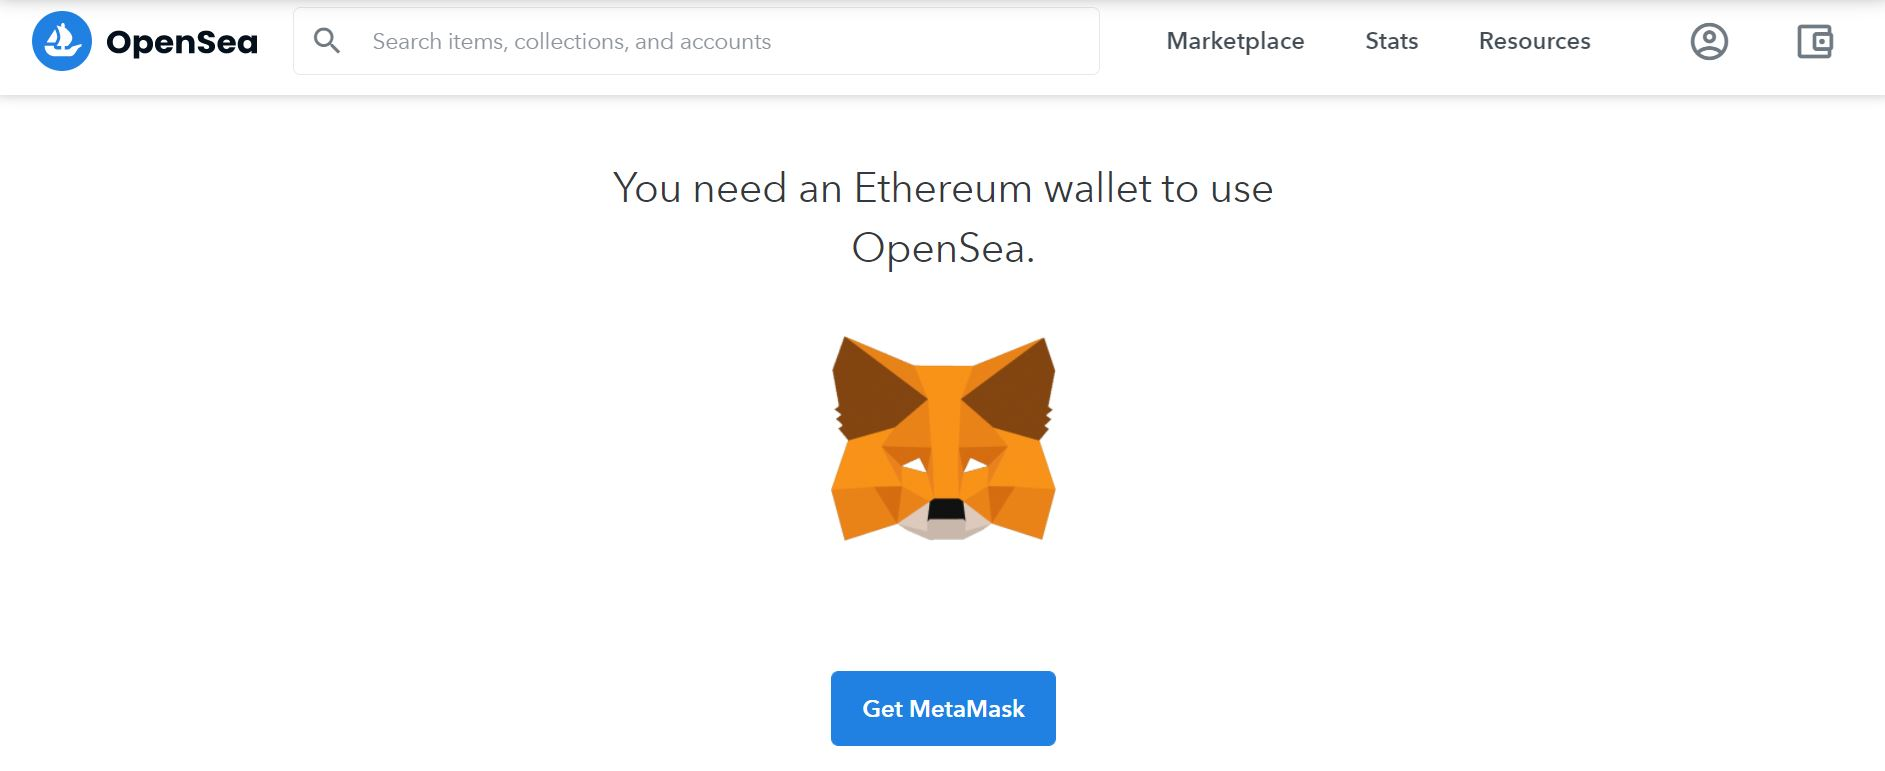 Opensea - A marketplace where you can create an nft